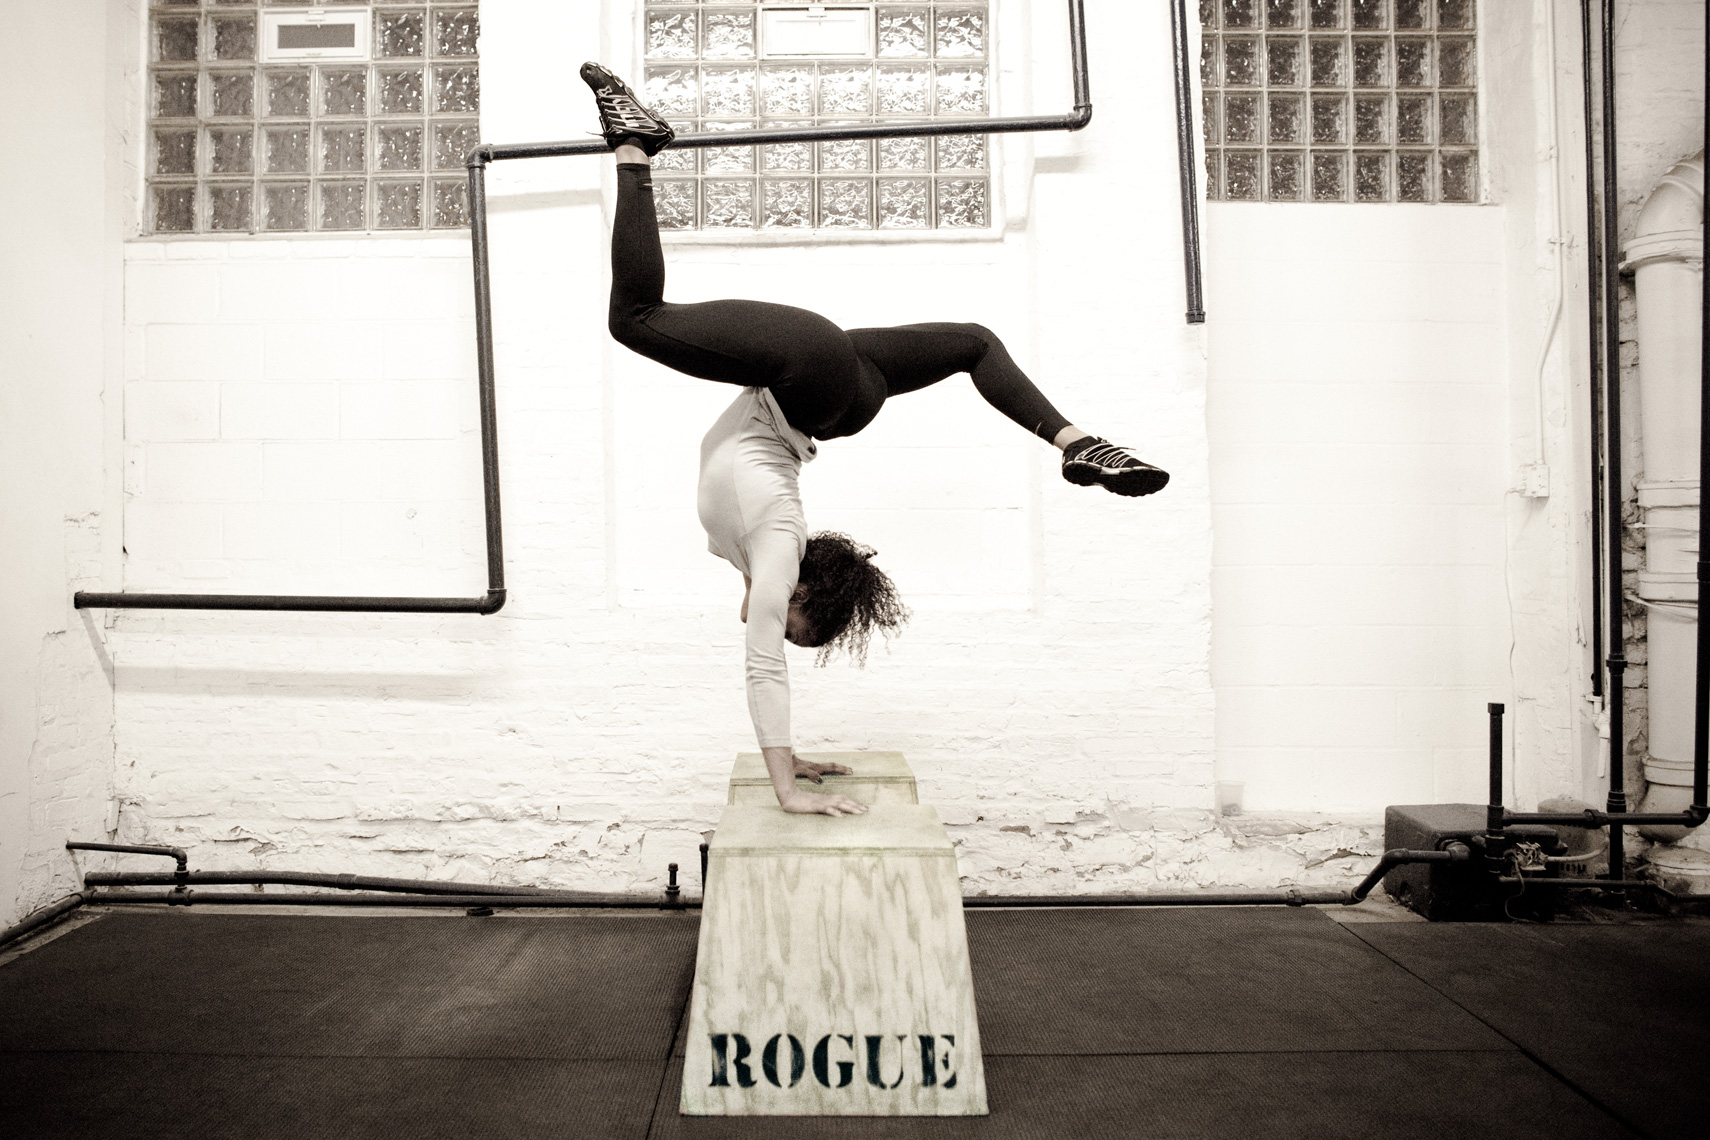 Los Angeles Sports Photography, Michael Brian, female, Elisabeth Akinwale, Reebok Crossfit Games athlete, handstand on box, Chicago, Sweat RX Magazine